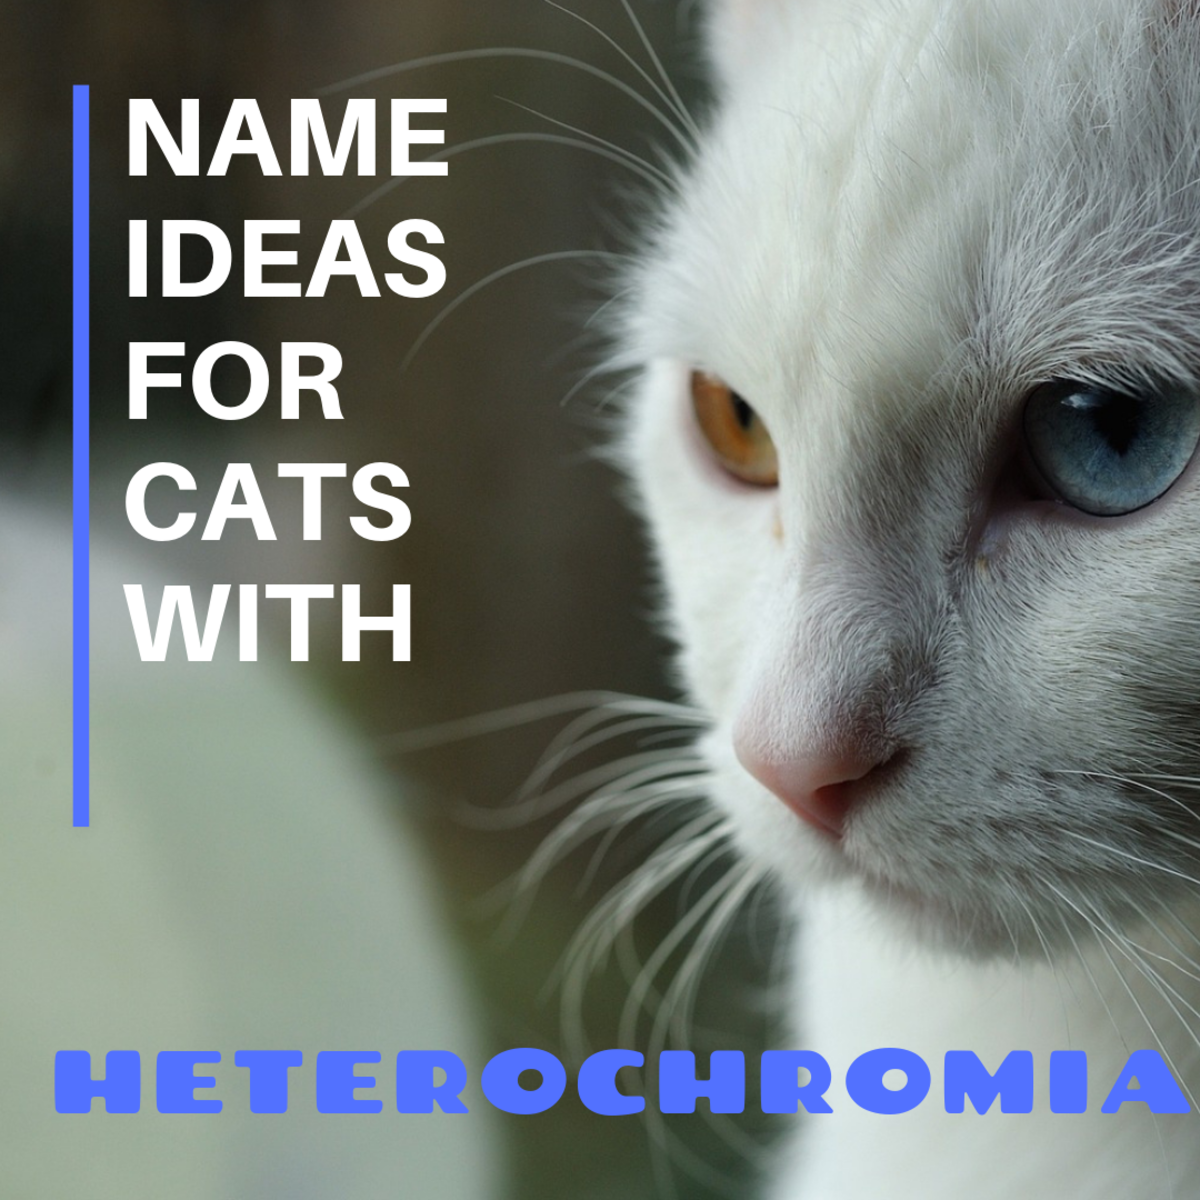 150+ Names for Cats With 2 Different Eye Colors (Heterochromia)